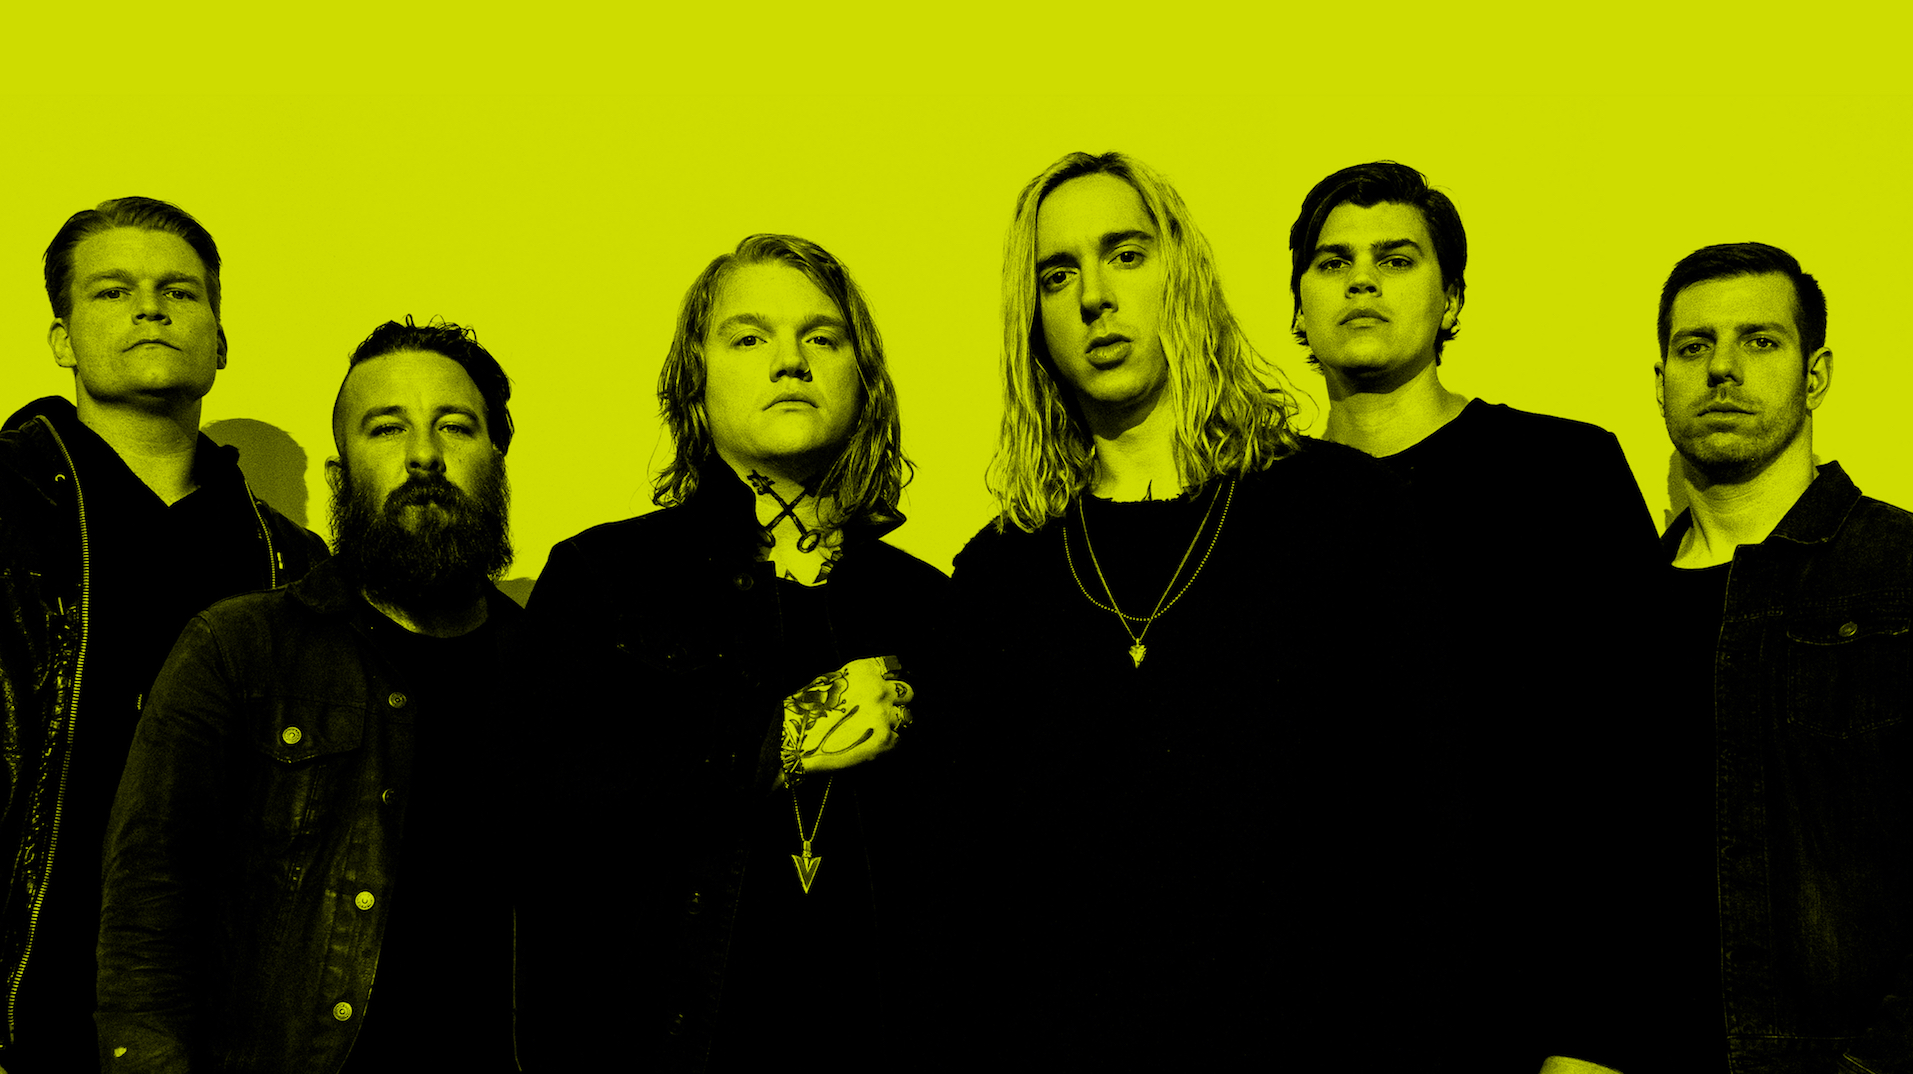 Underoath's Tour Bus Playlist Featuring Porches, Run The Jewels, And Sir Sly